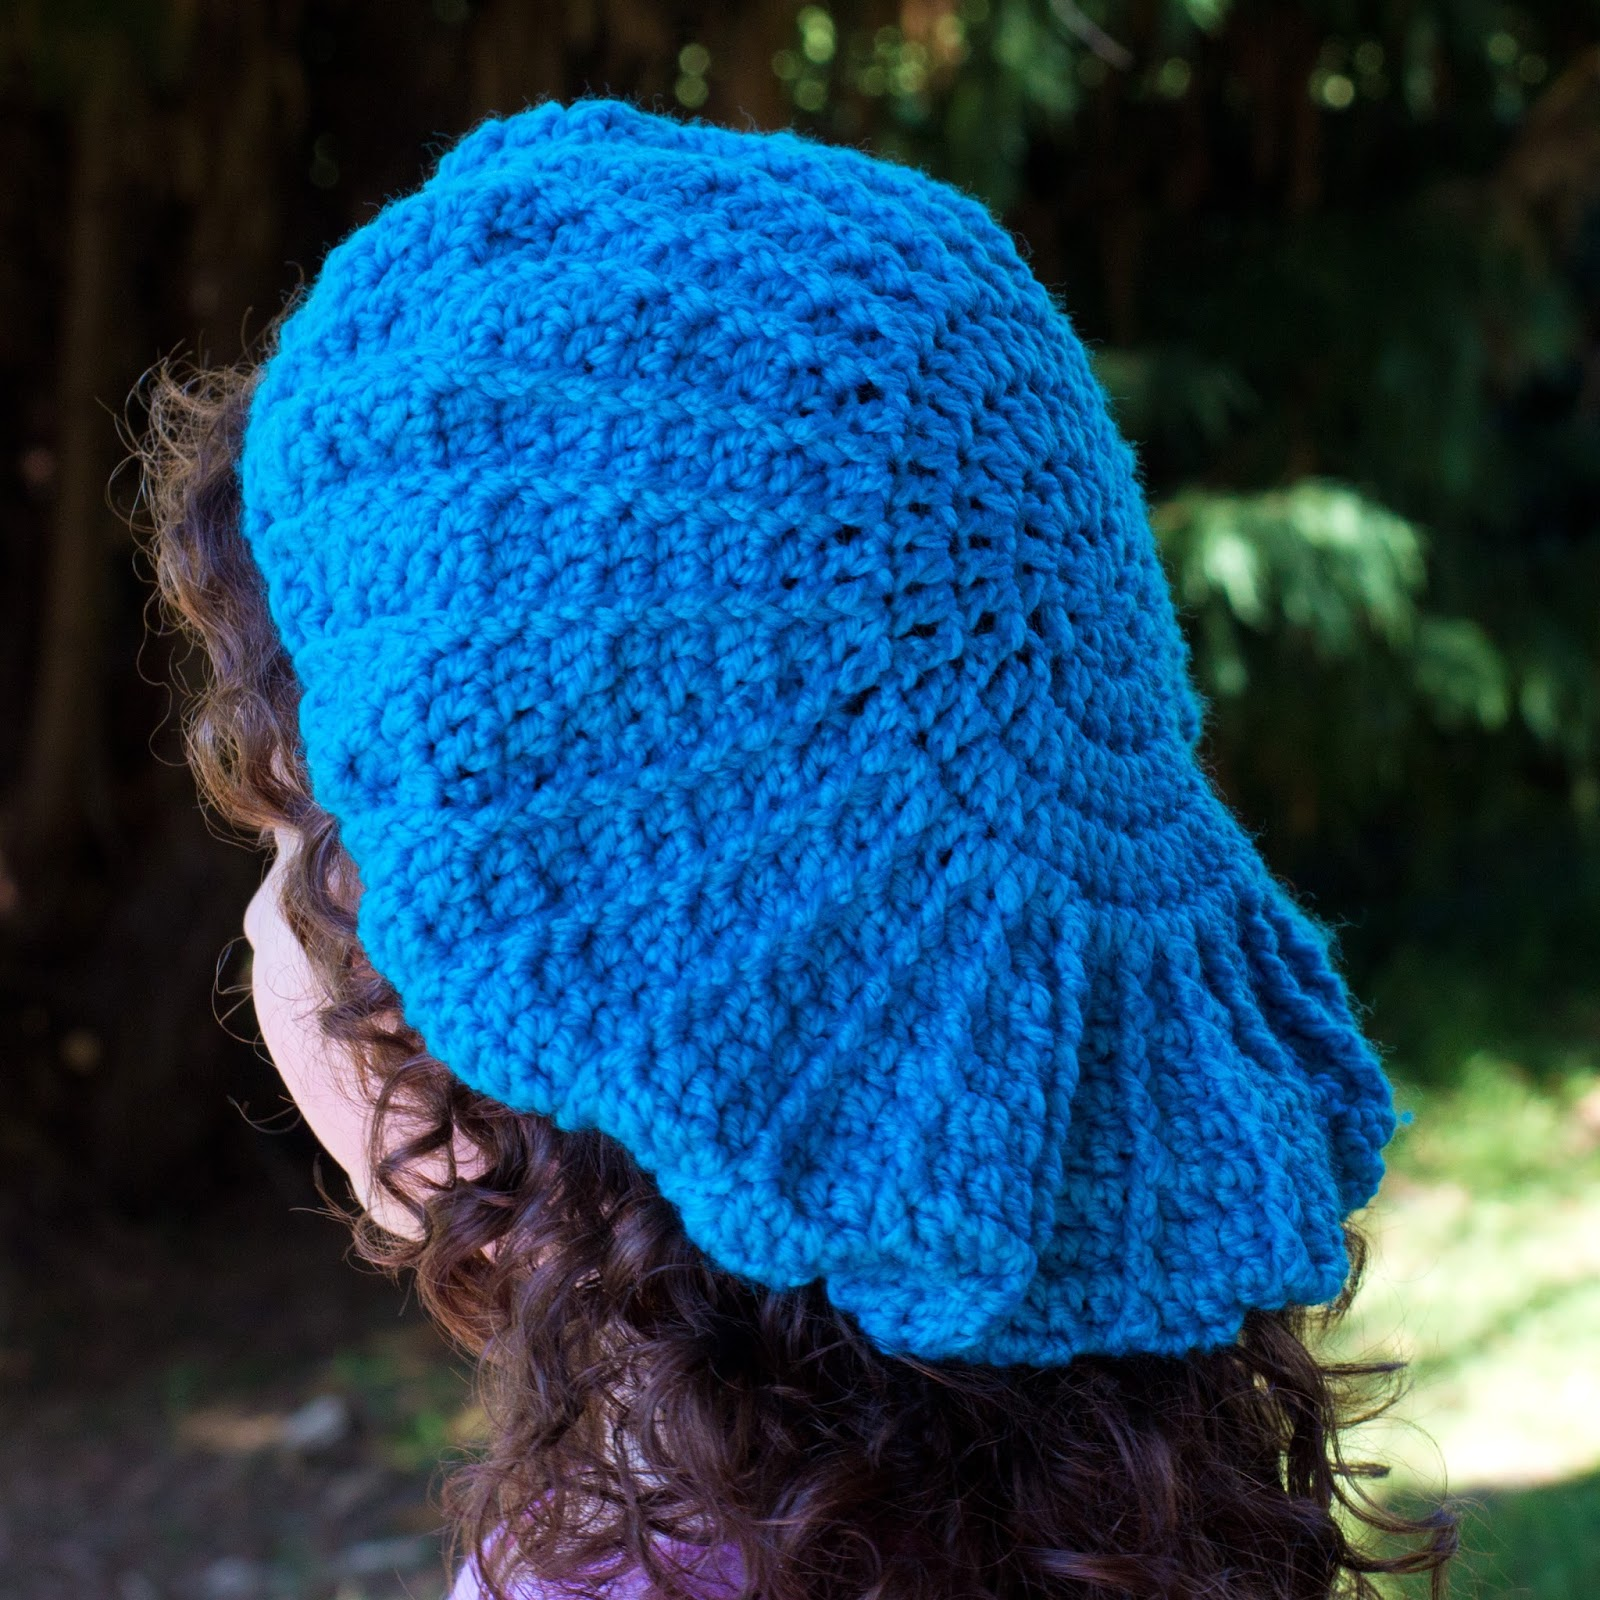 Crochet Patterns Unique : ... Honey Craft, Crochet, Create: 10 Free Unique Hat Crochet Patterns